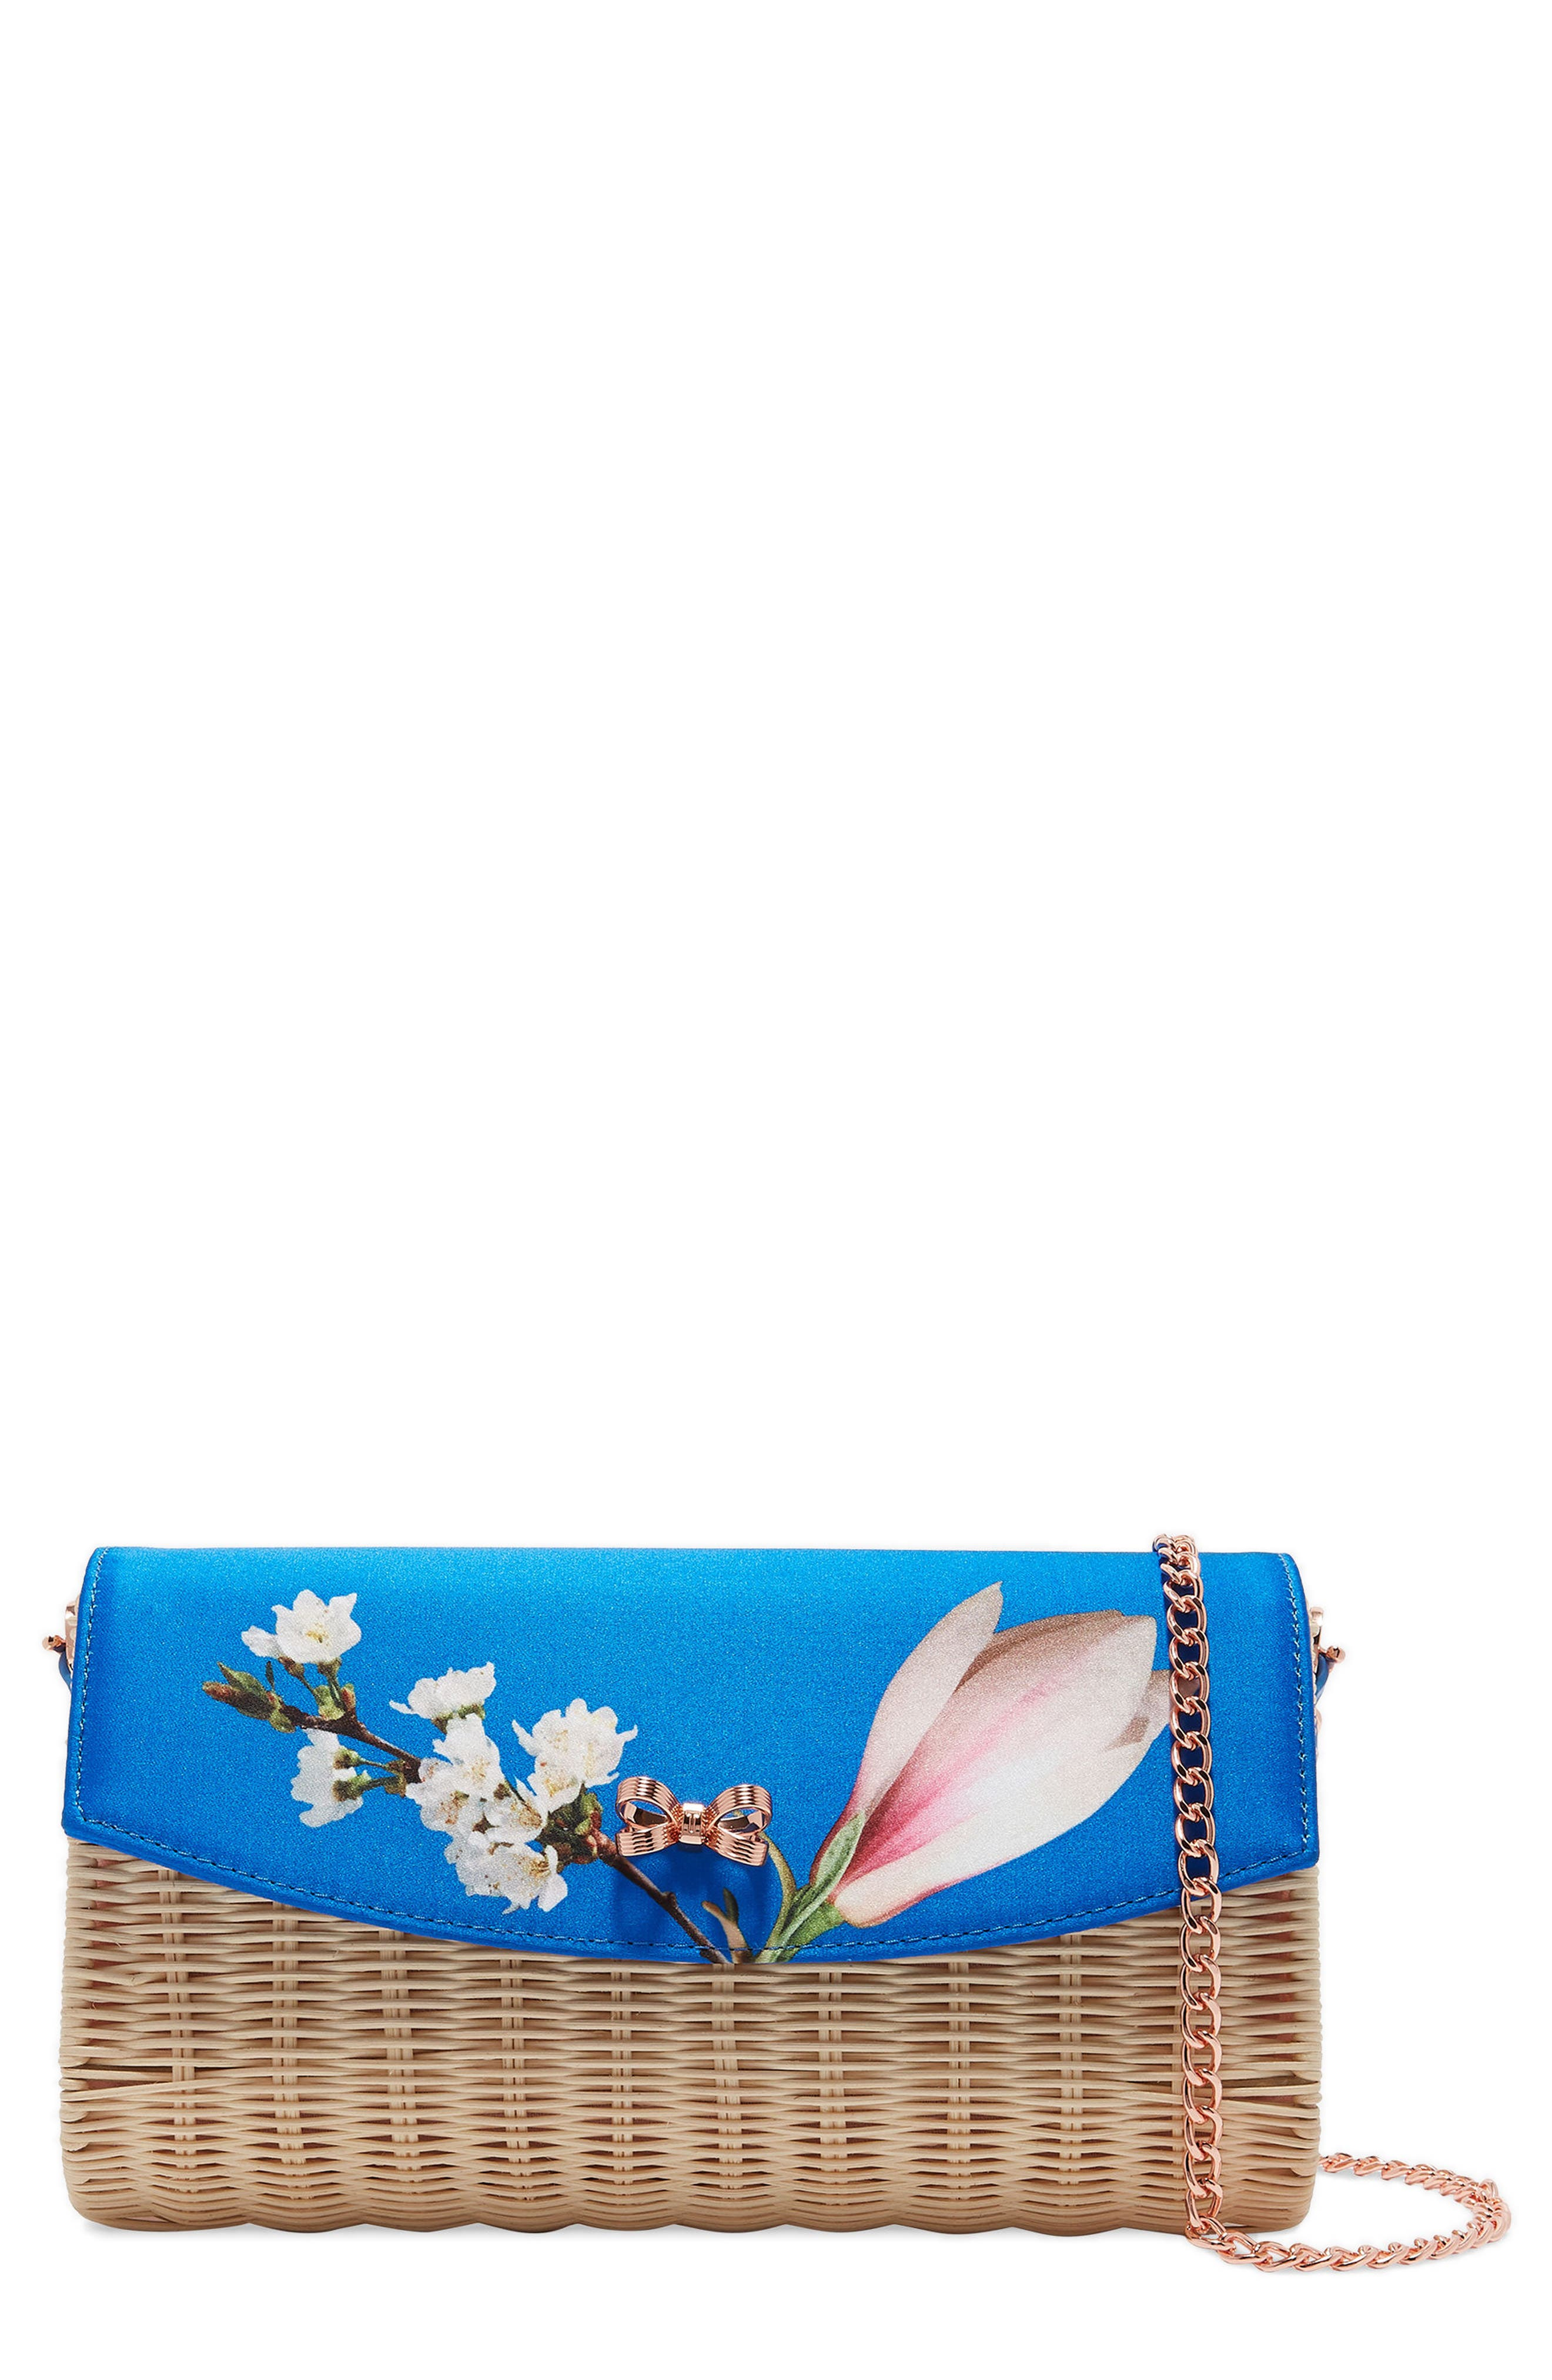 Haarley Harmony Woven Rattan Clutch,                             Main thumbnail 1, color,                             Bright Blue